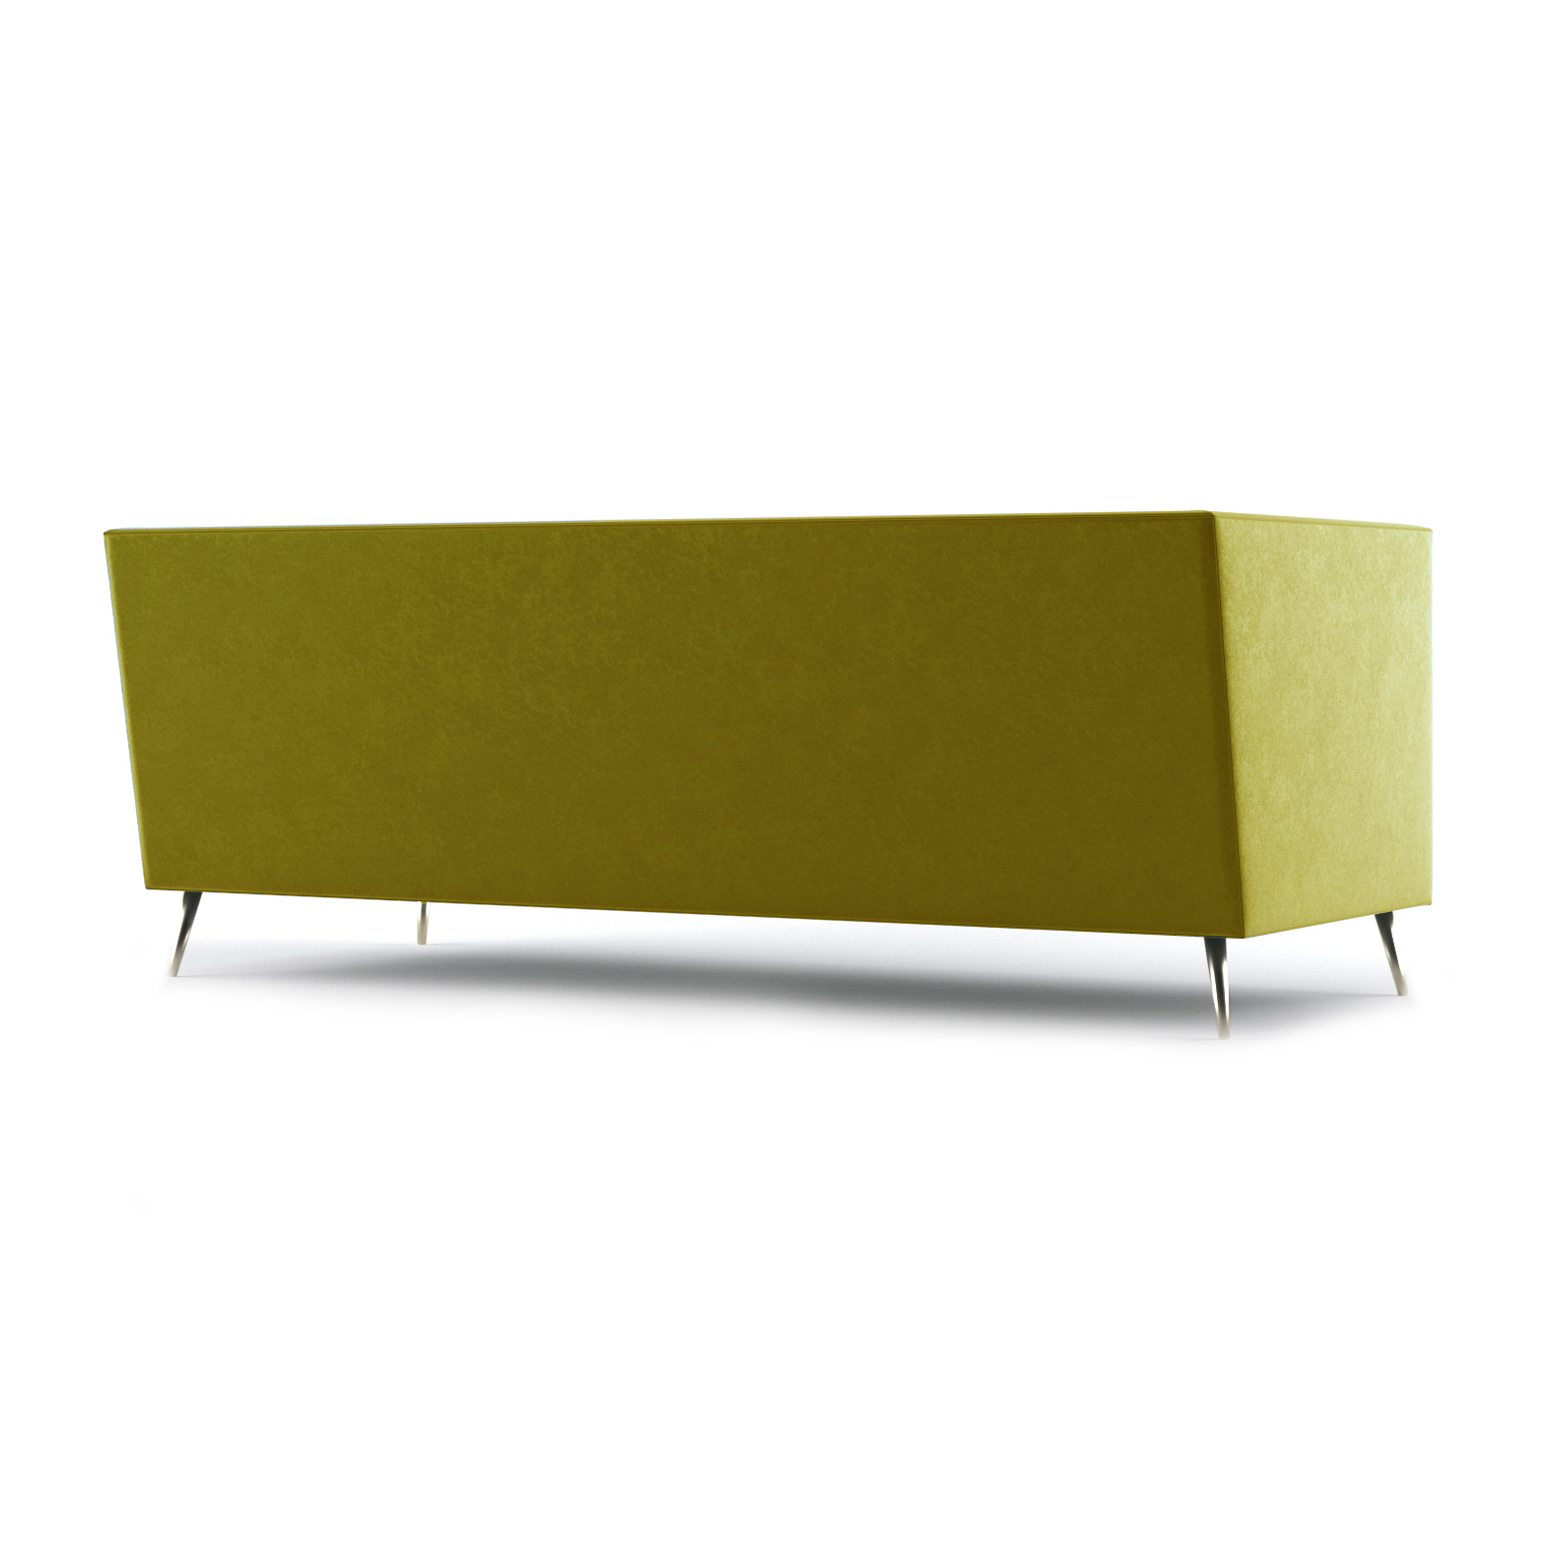 Connick Three and a Half Seater Sofa by Bonham & Bonham Gold 08